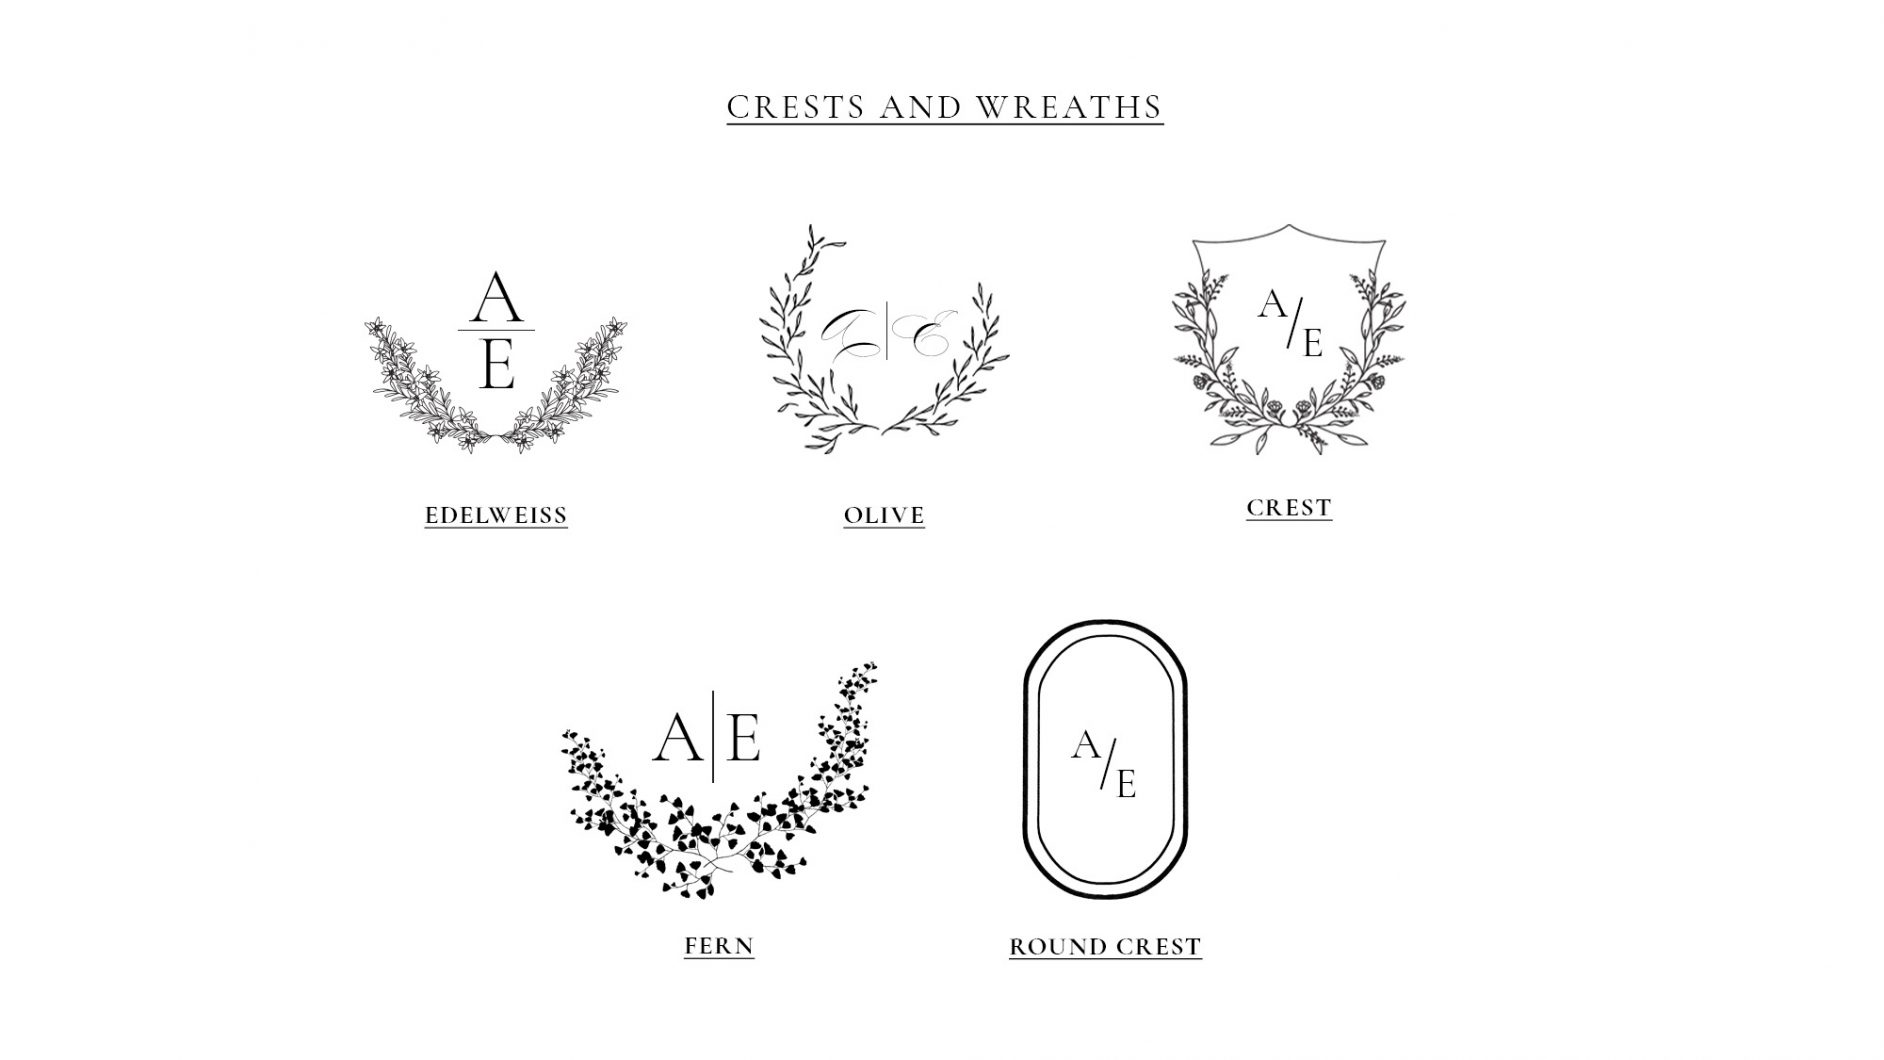 Wreath And Crests